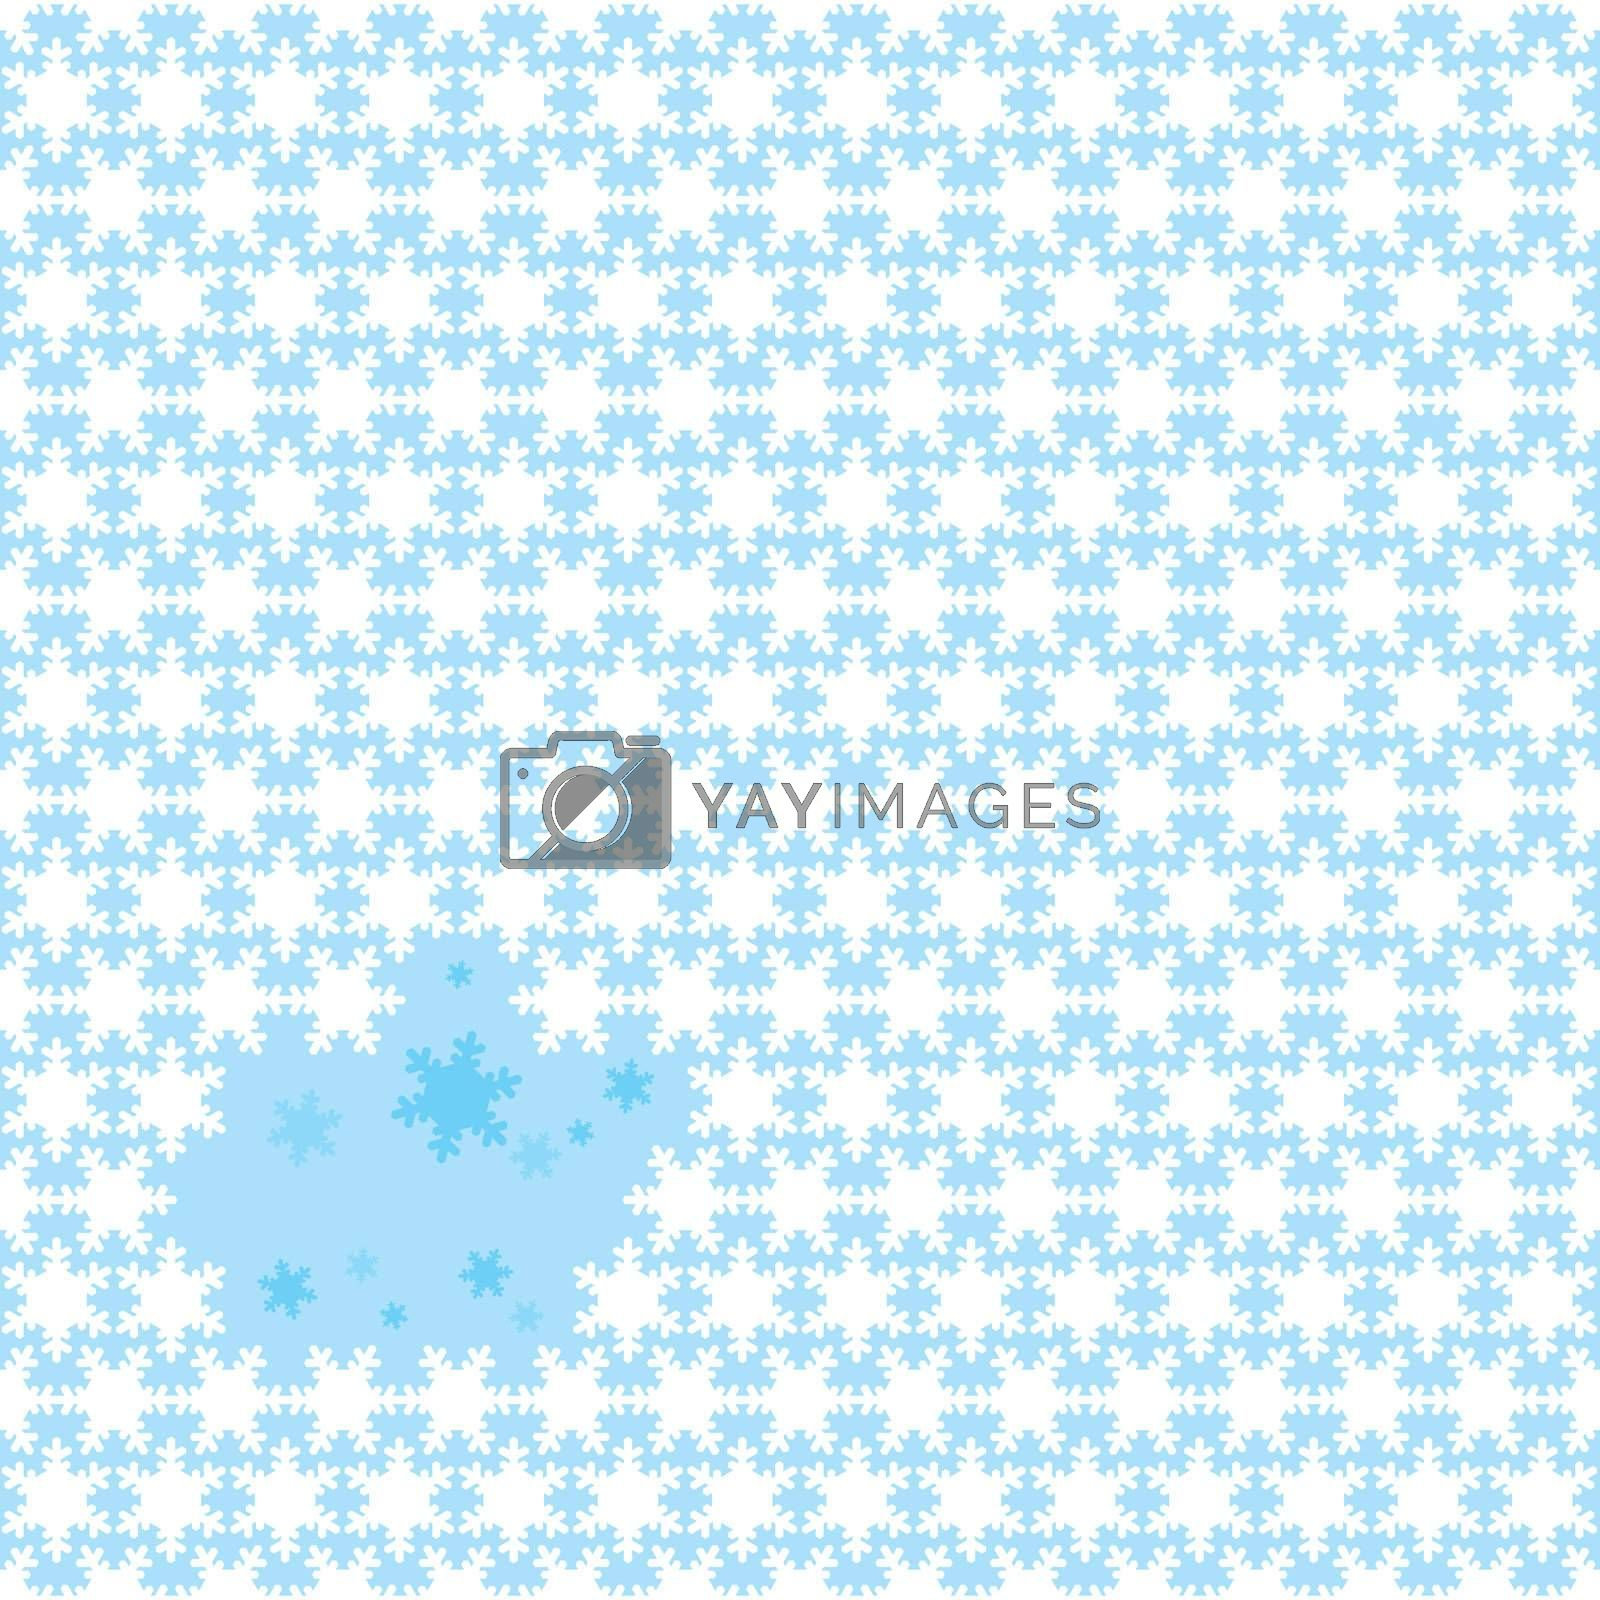 Abstract seamless christmas background with snow flakes and copyspace